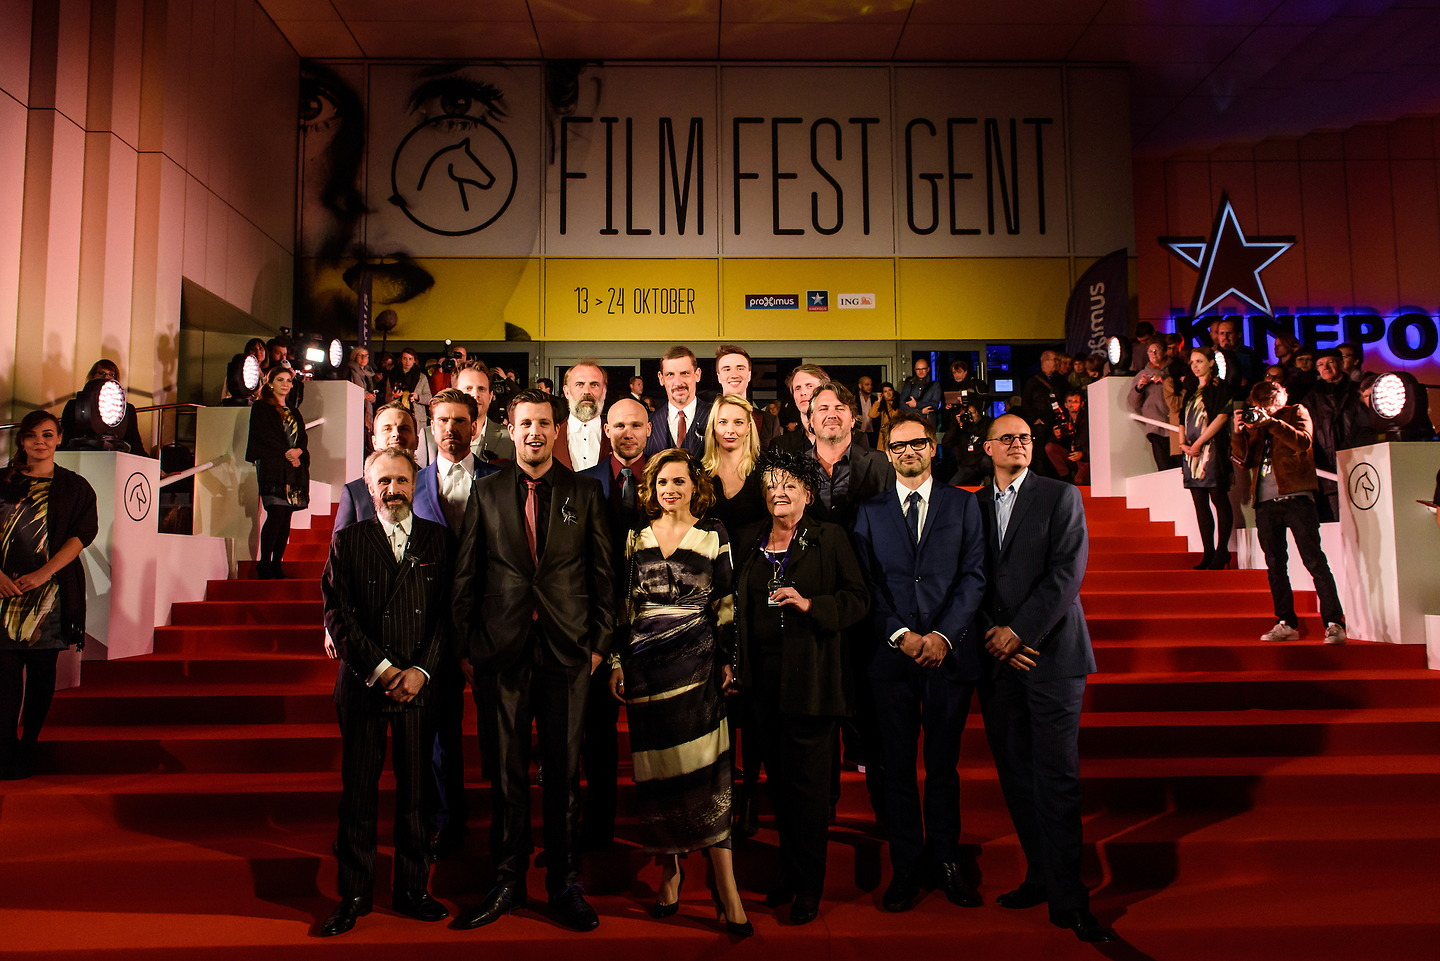 Film Fest Gent - Red carpet @ opening 42nd FFGENT (13-10-2015)